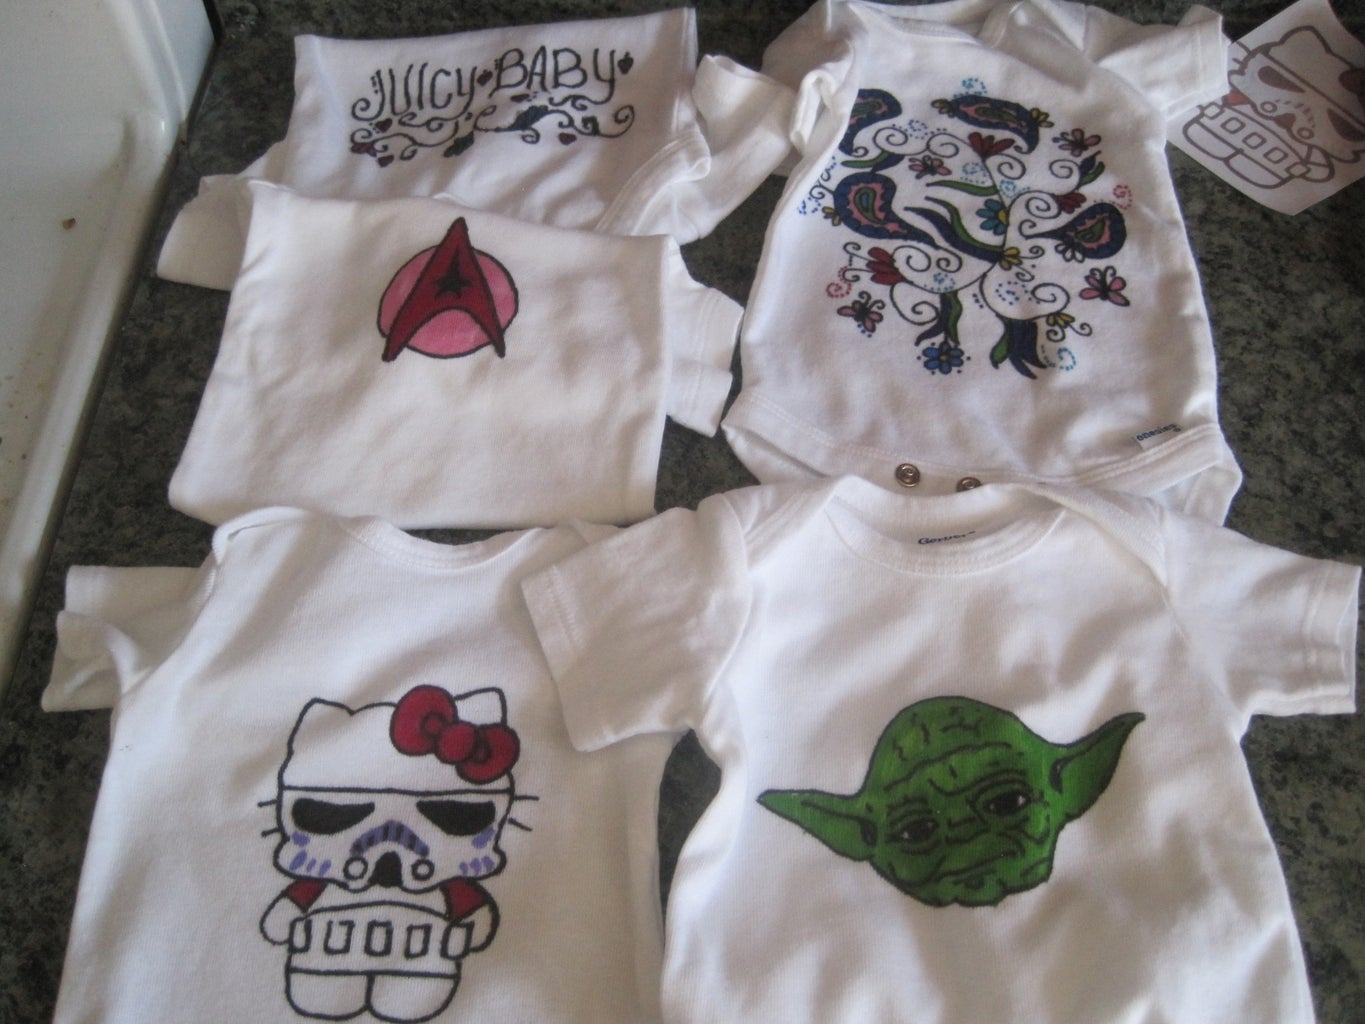 Decorating a Onesie With a Permanent Marker